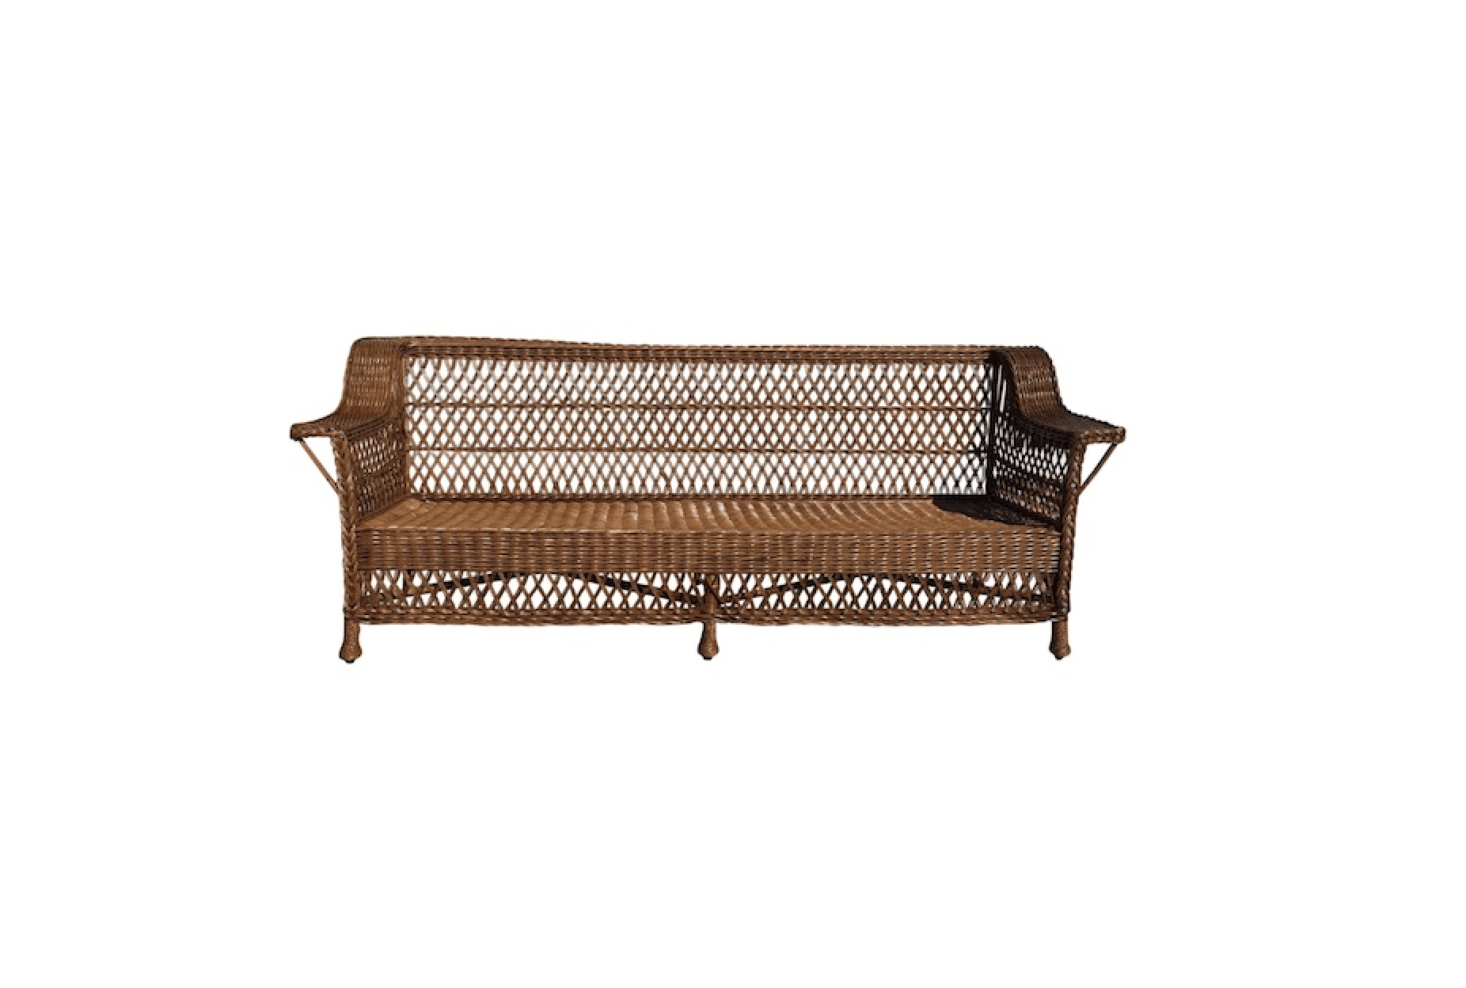 A one-of-a-kind Antique Bar Harbor Wicker Sofa is 85 inches long and is $7,500 from 1st Dibs.